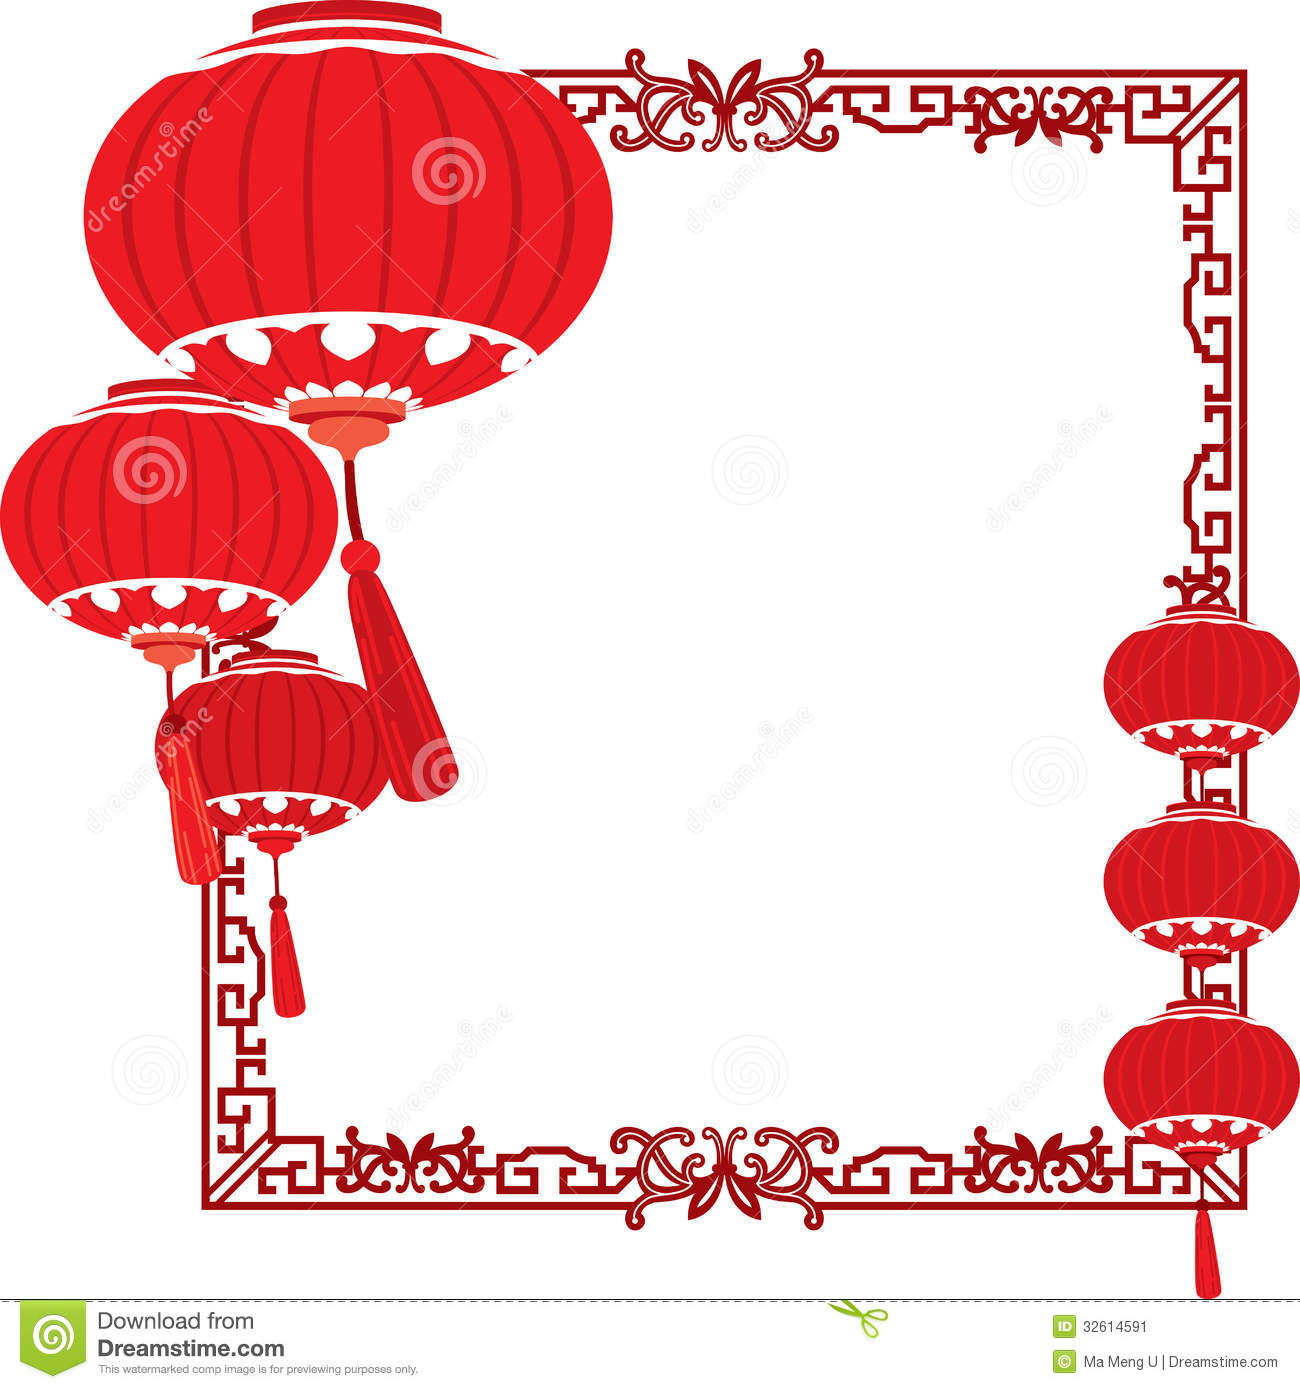 Asians clipart Red decorations chinese Chinese lanterns